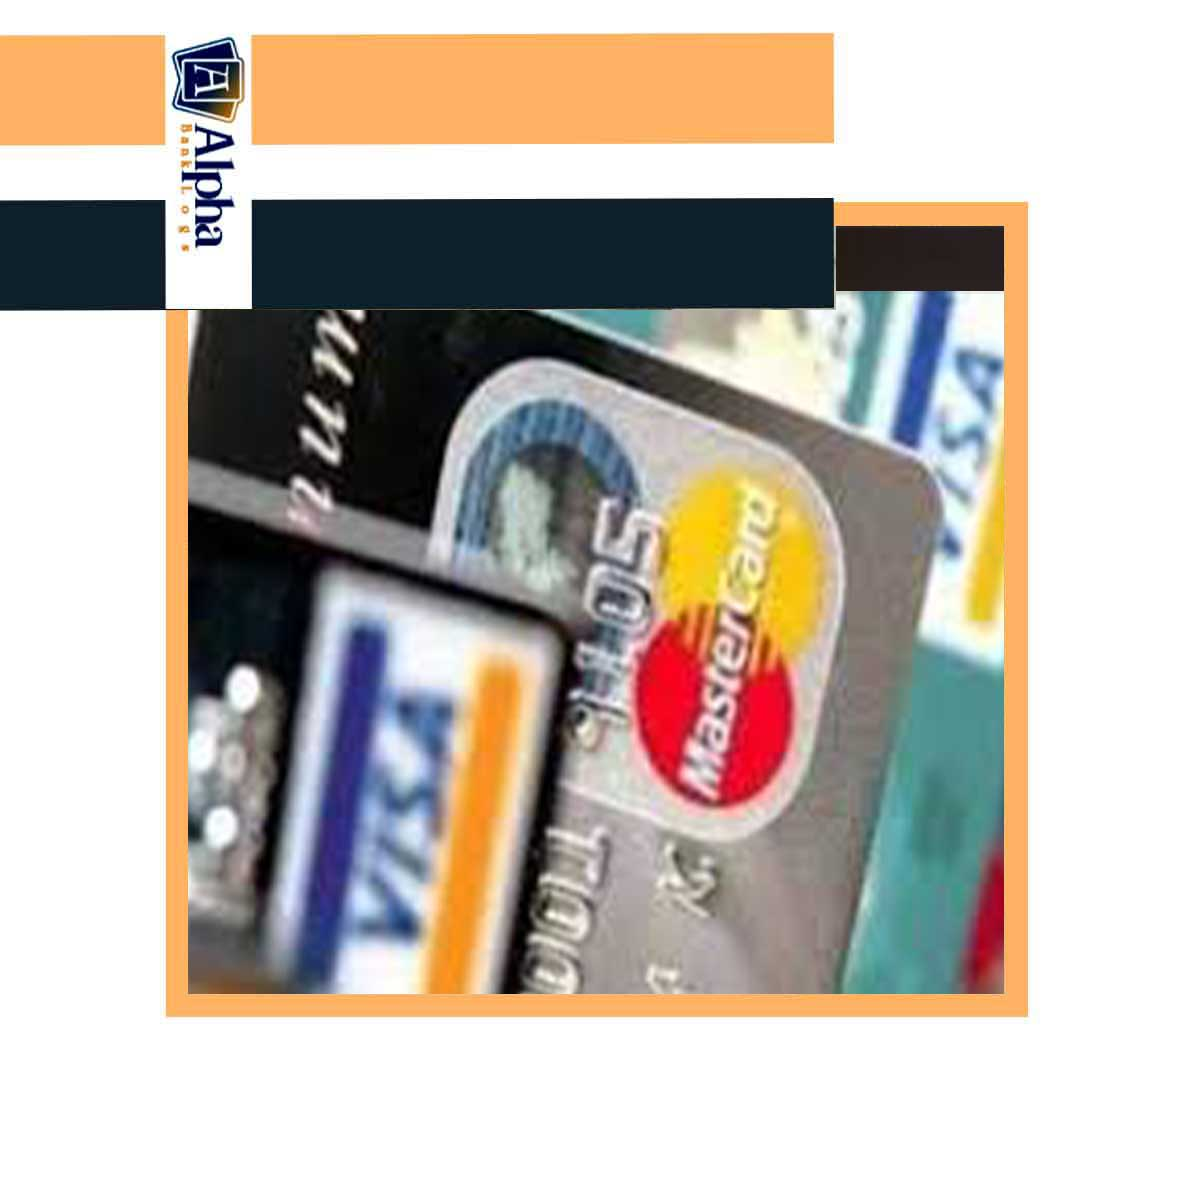 USA AMEX CC OR DC PERFECT CARDS FOR WEB CARDING